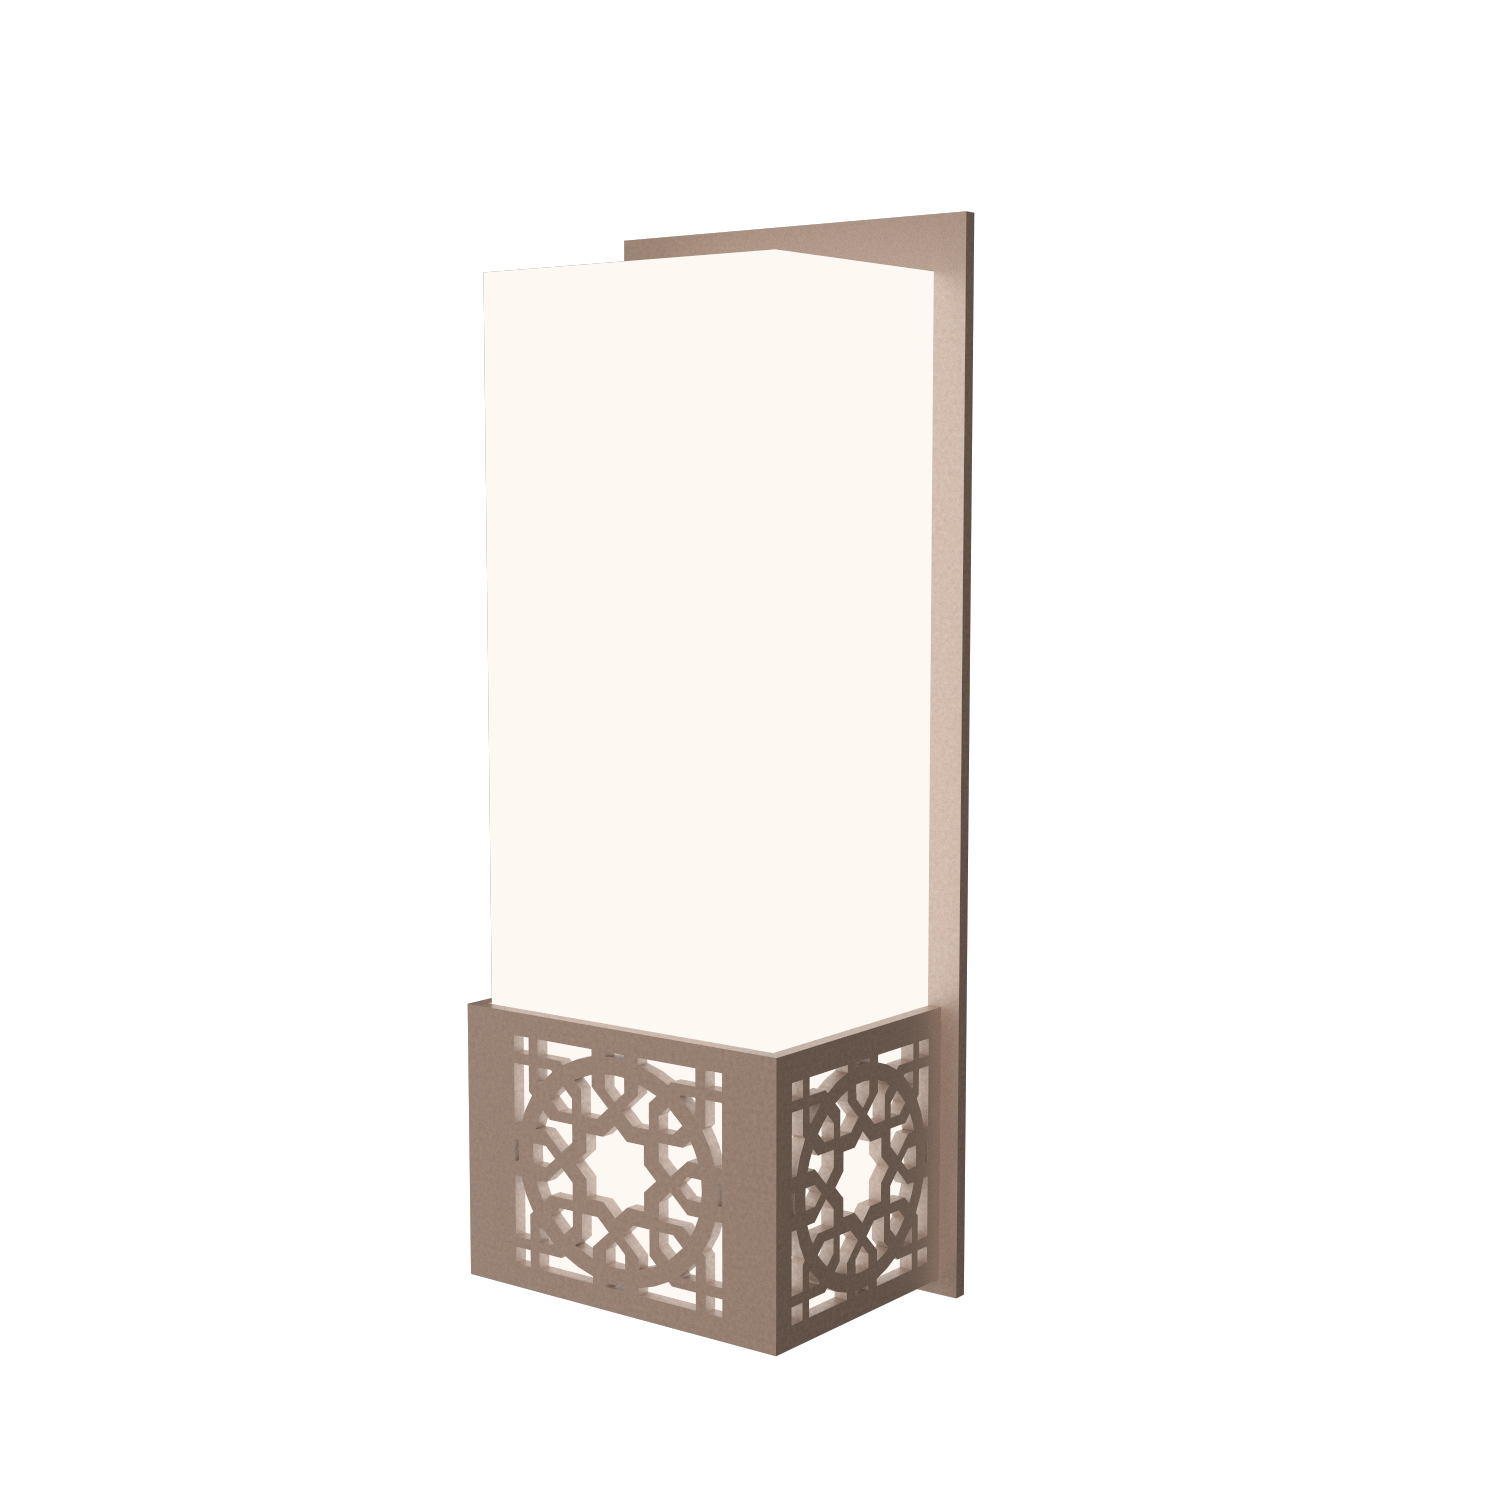 Wall Lamp Accord Patterns 4052 - Patterns Line Accord Lighting | 33. Bronze